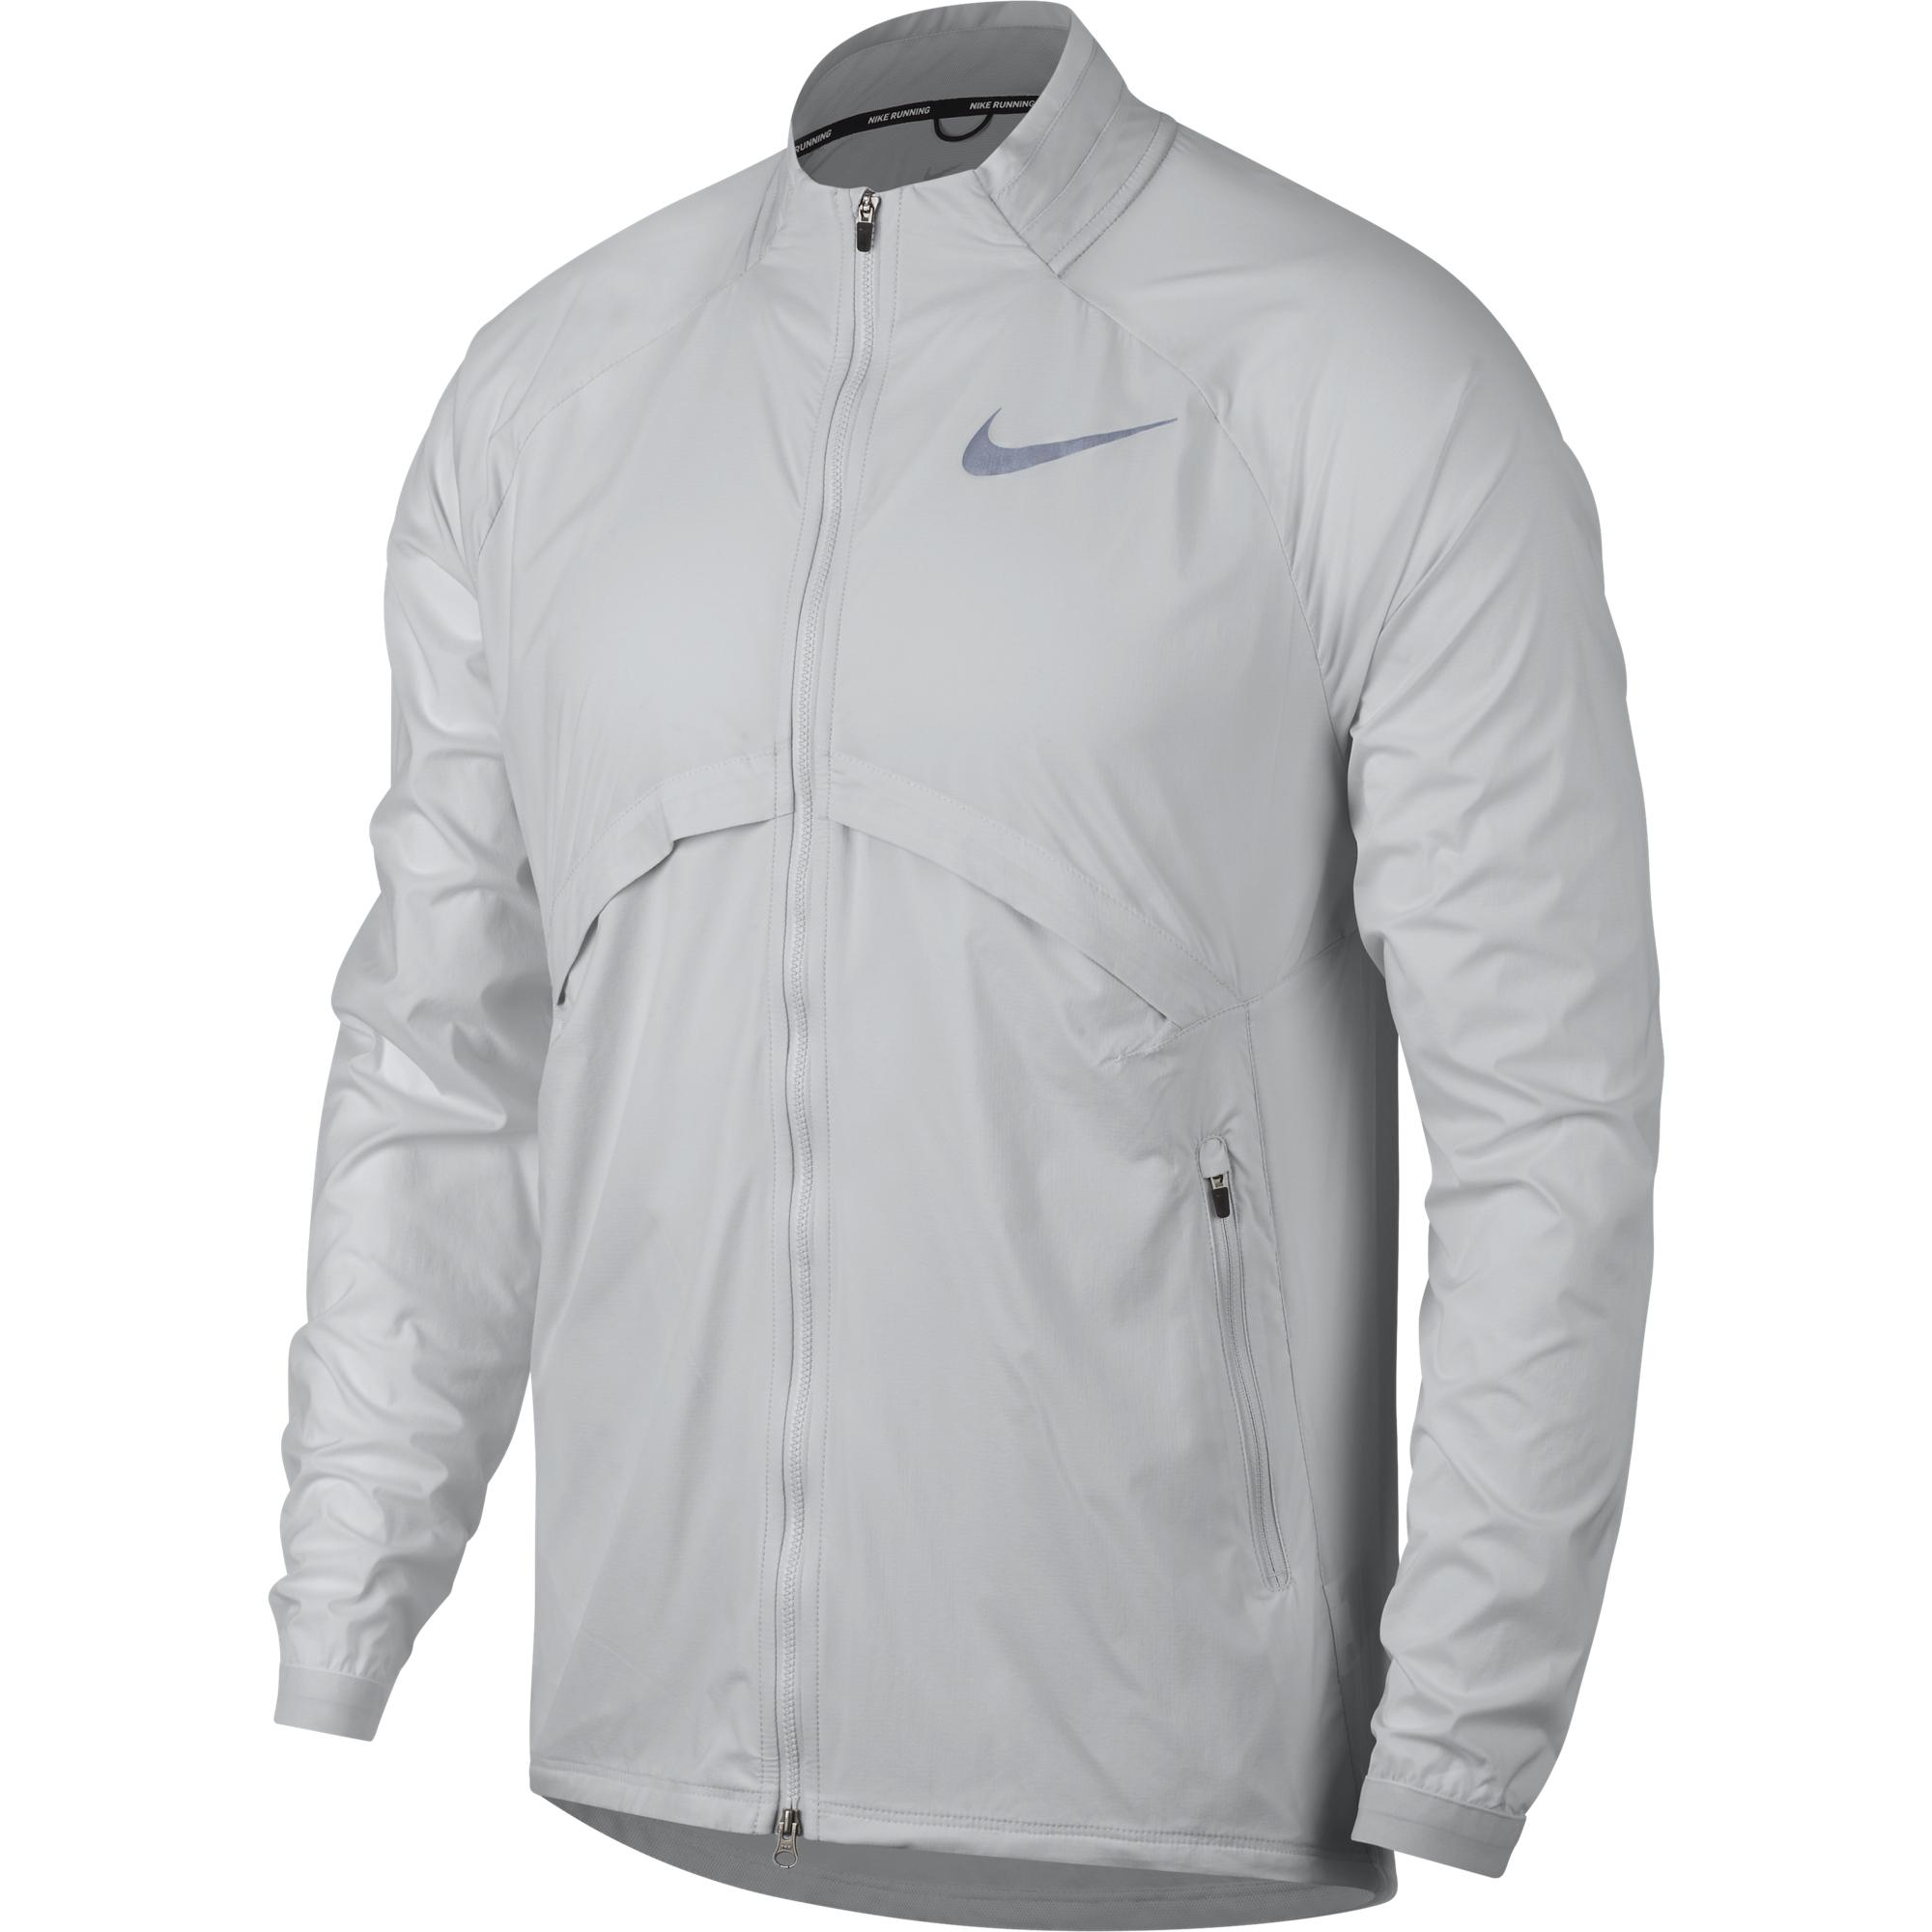 Nike Giacca Shield Convertible